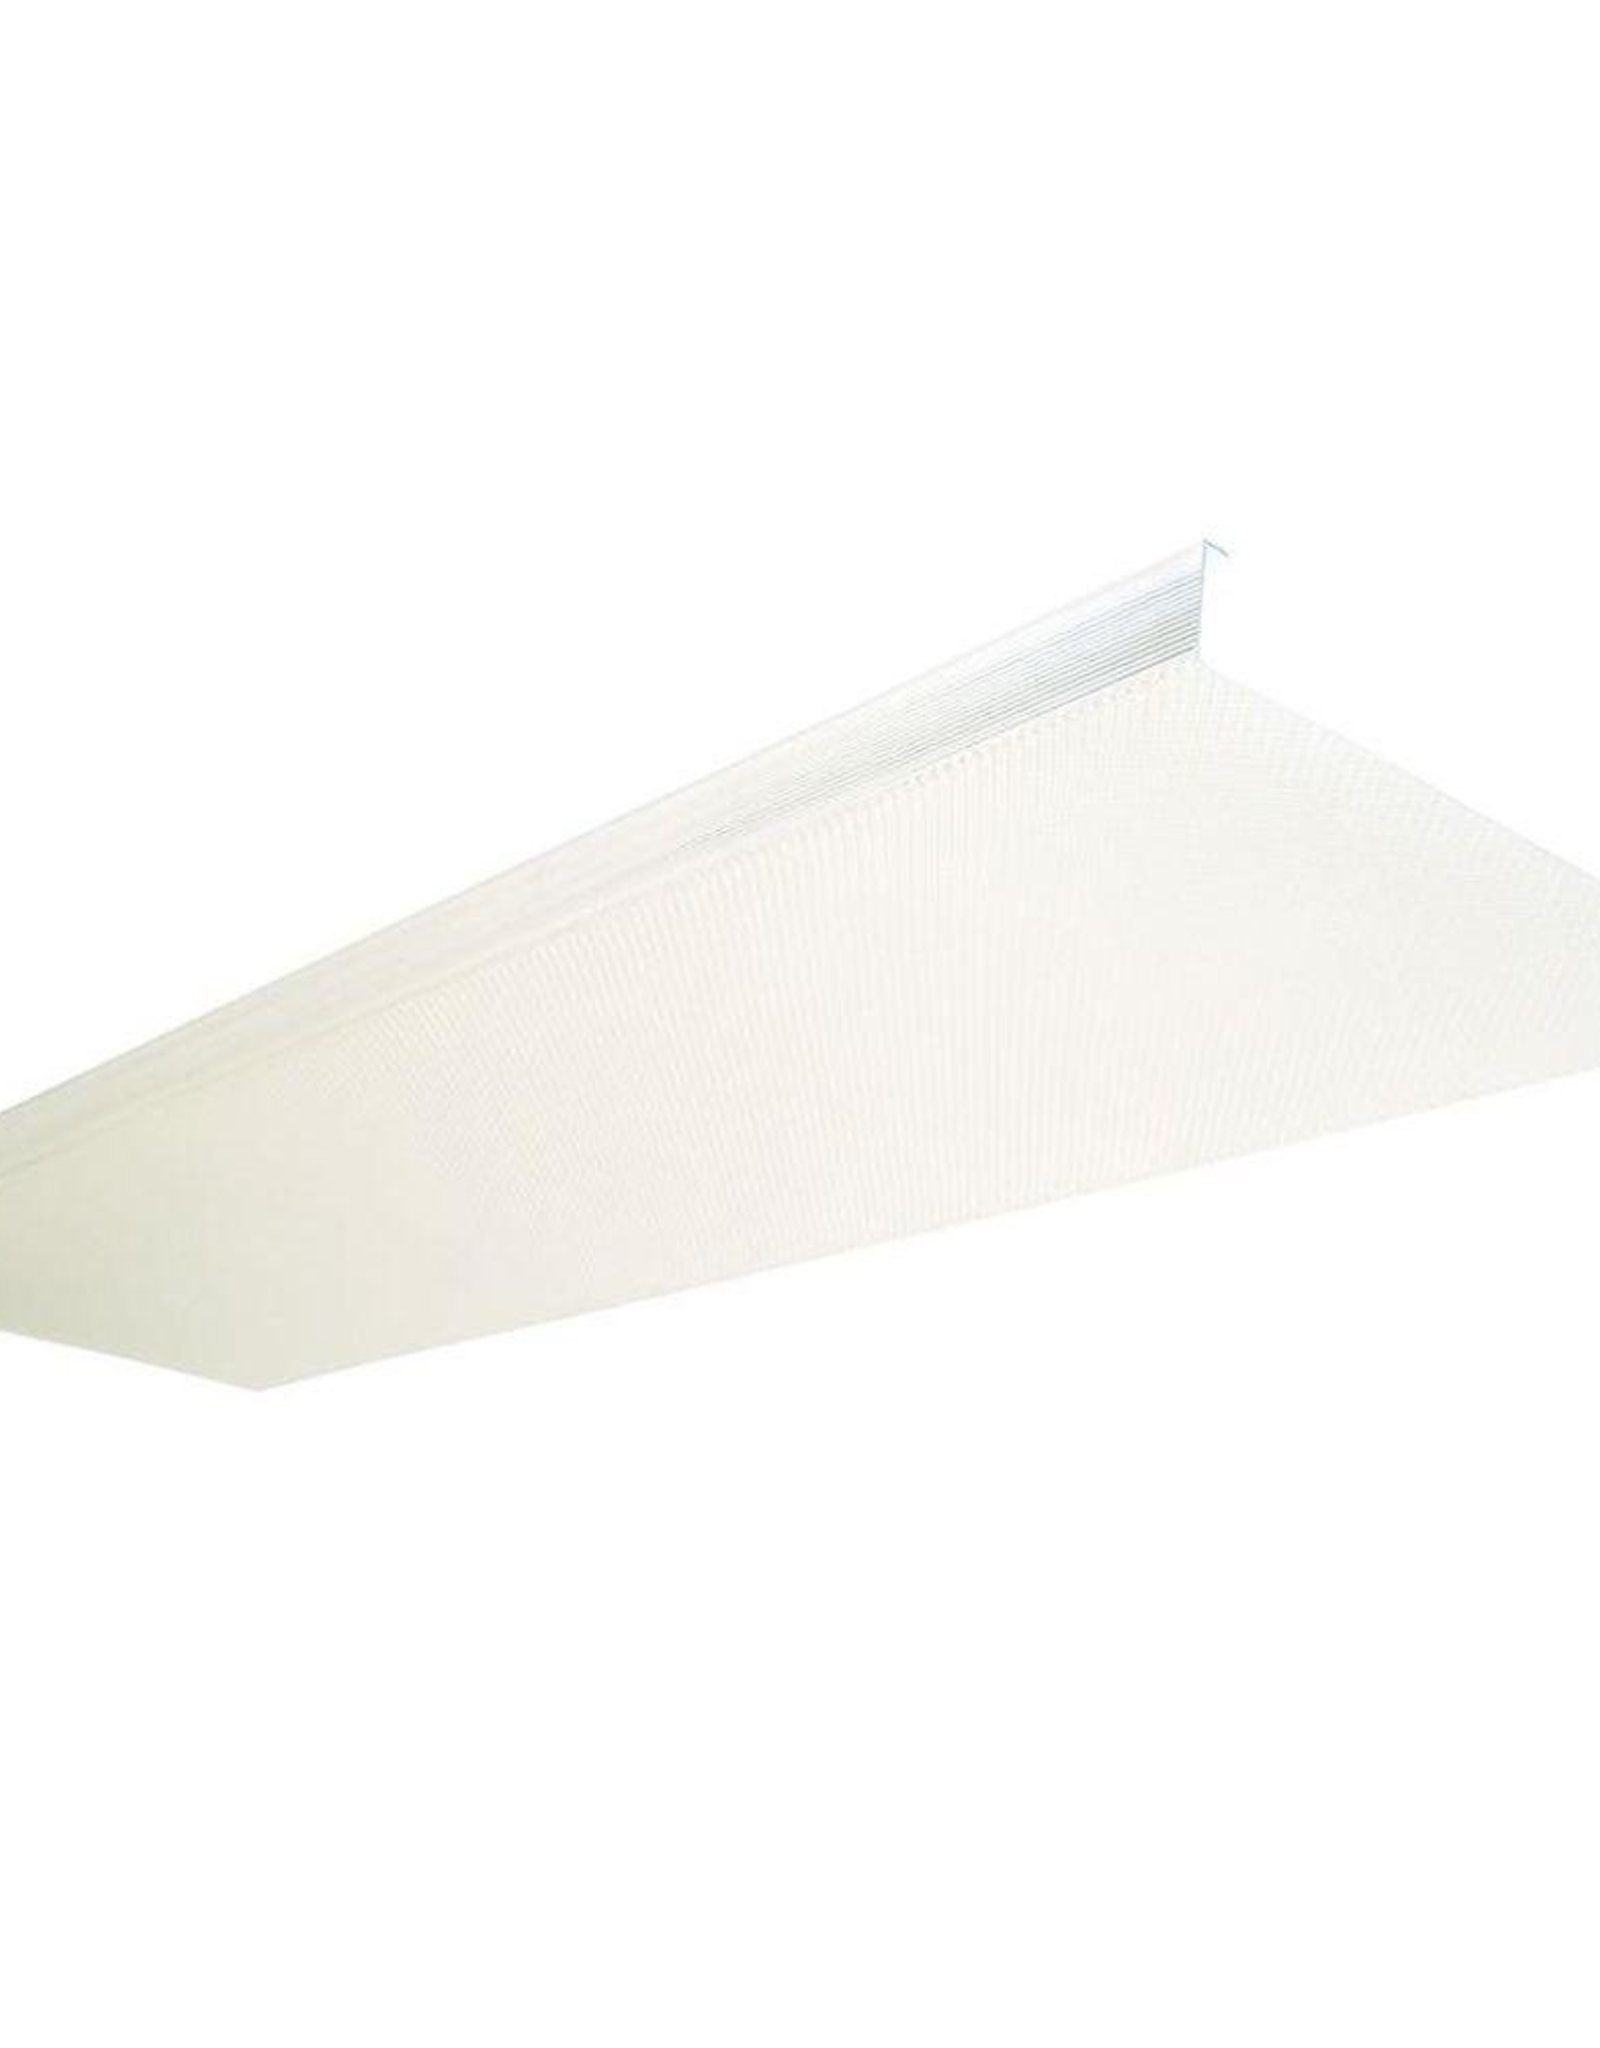 Lithonia Lighting 4 ft. Wide Body Acry